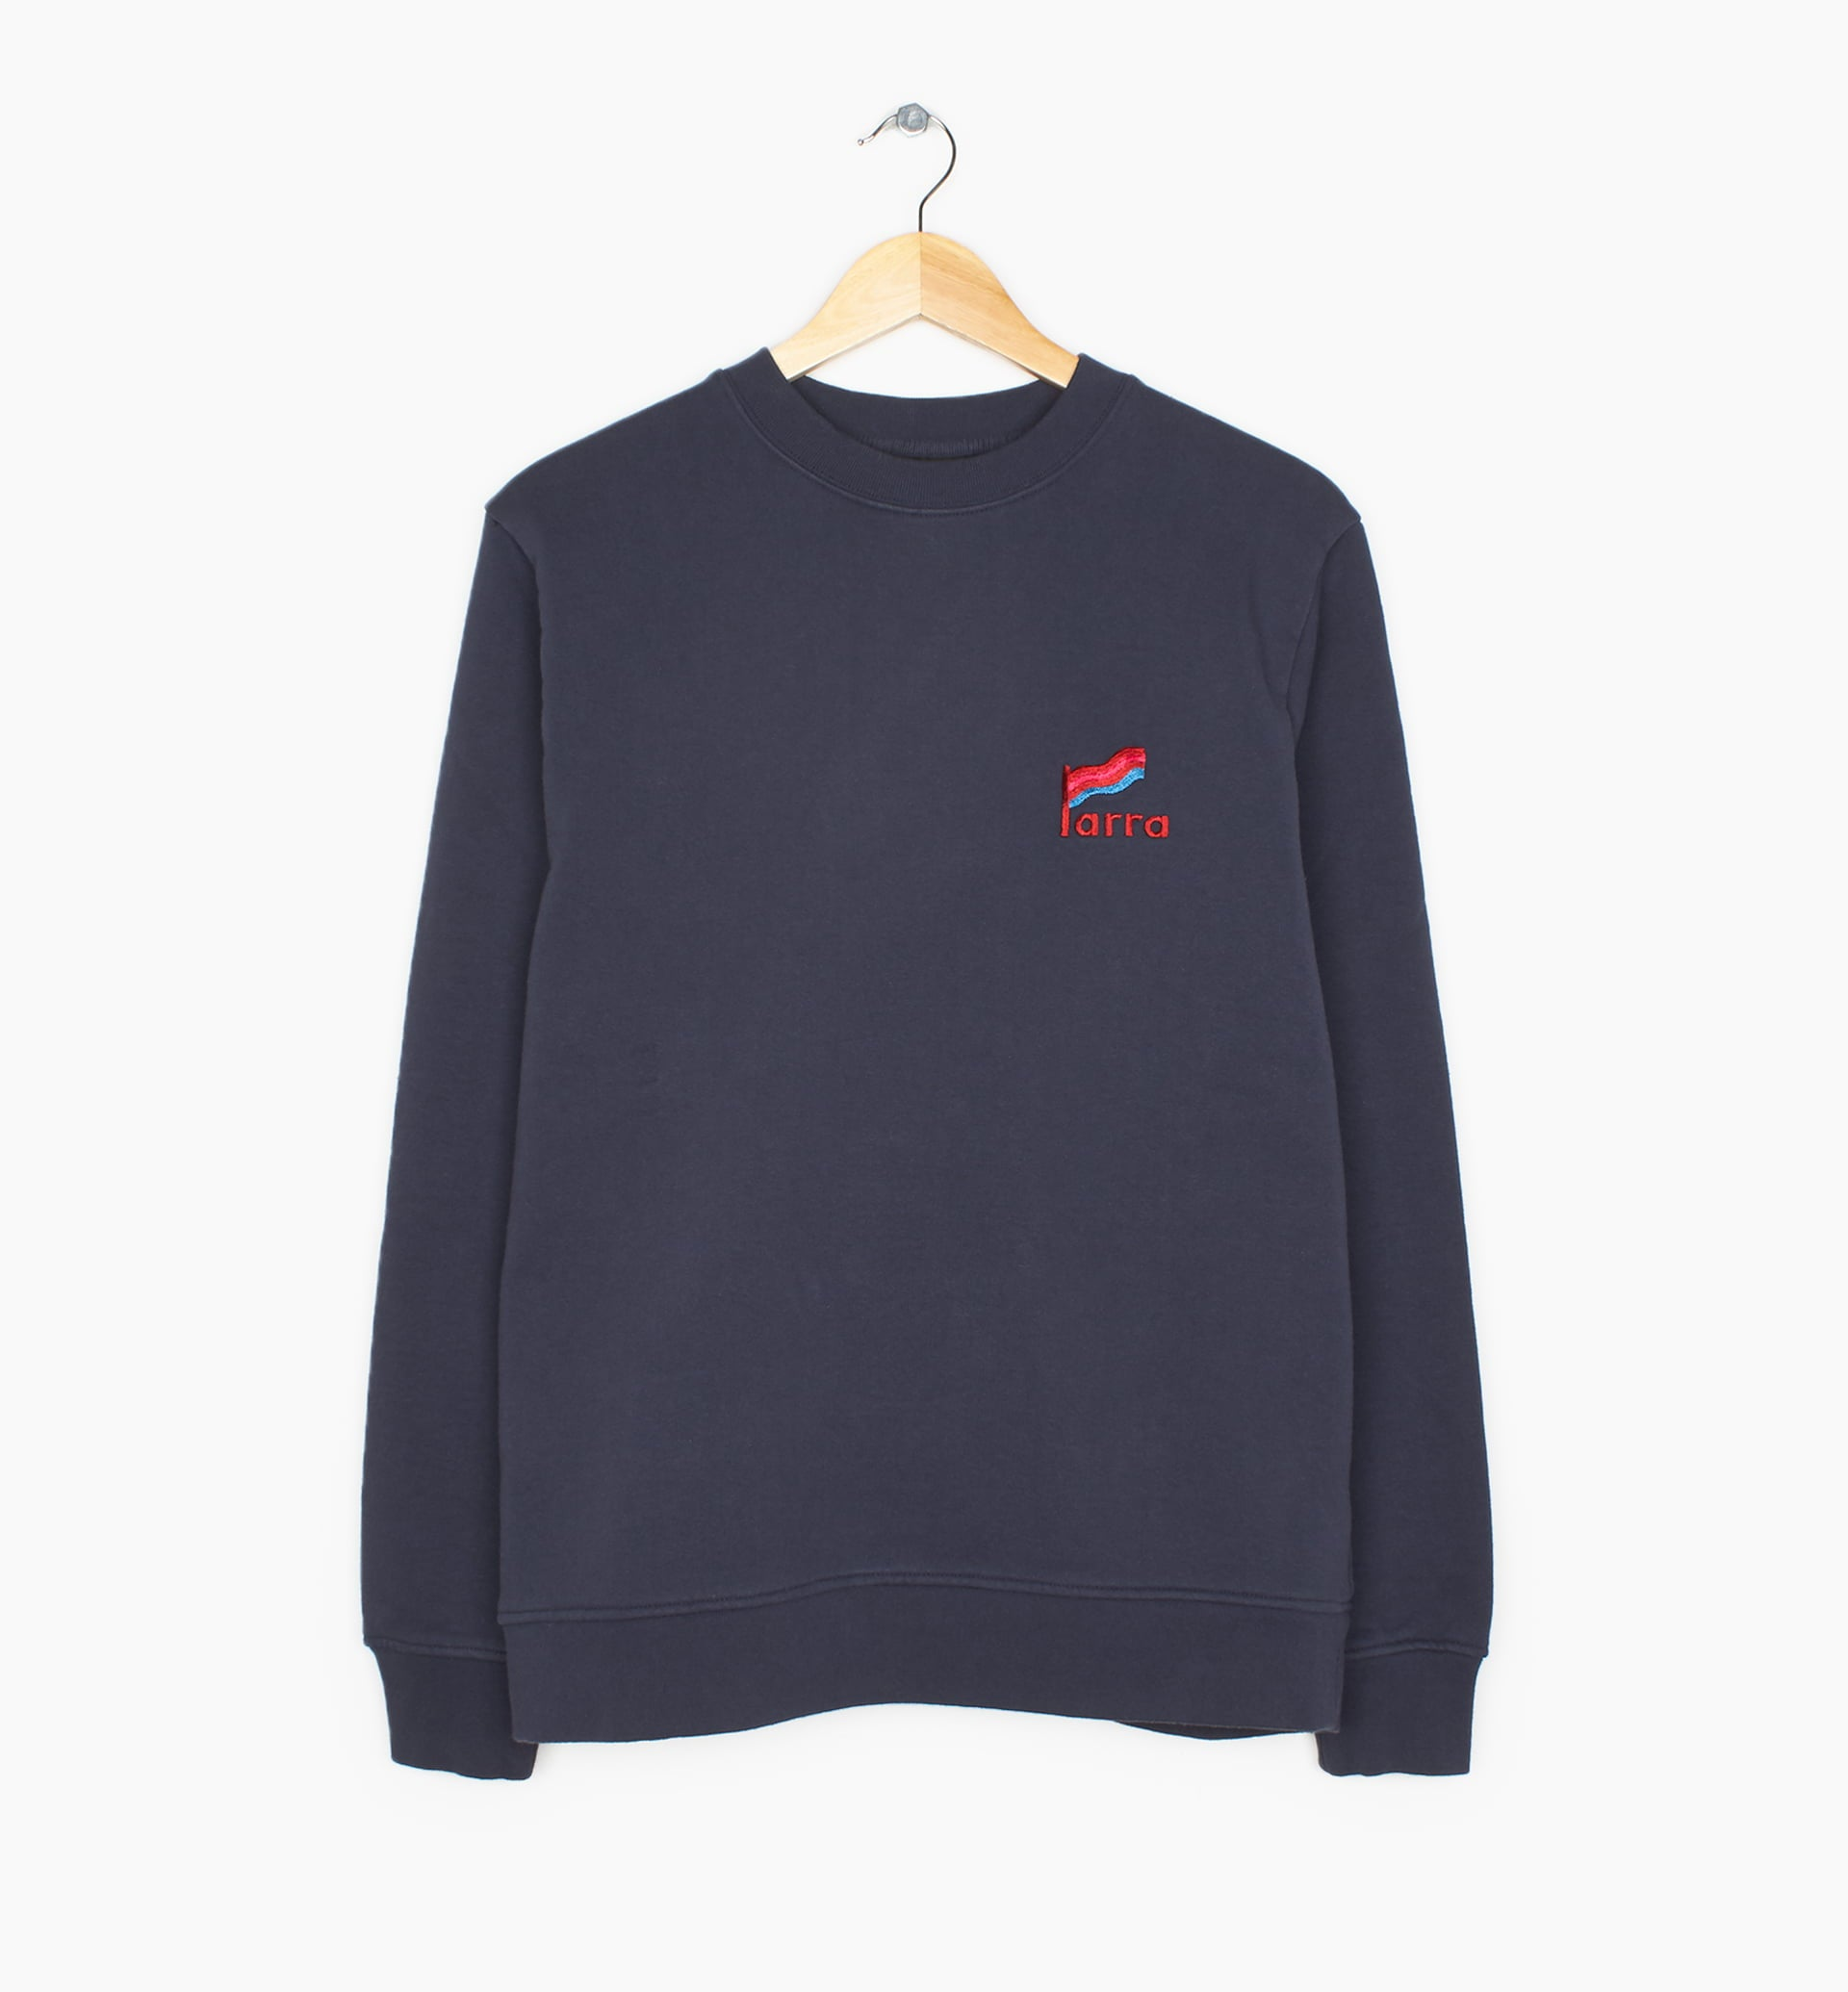 Parra - striped flag crewneck sweatshirt